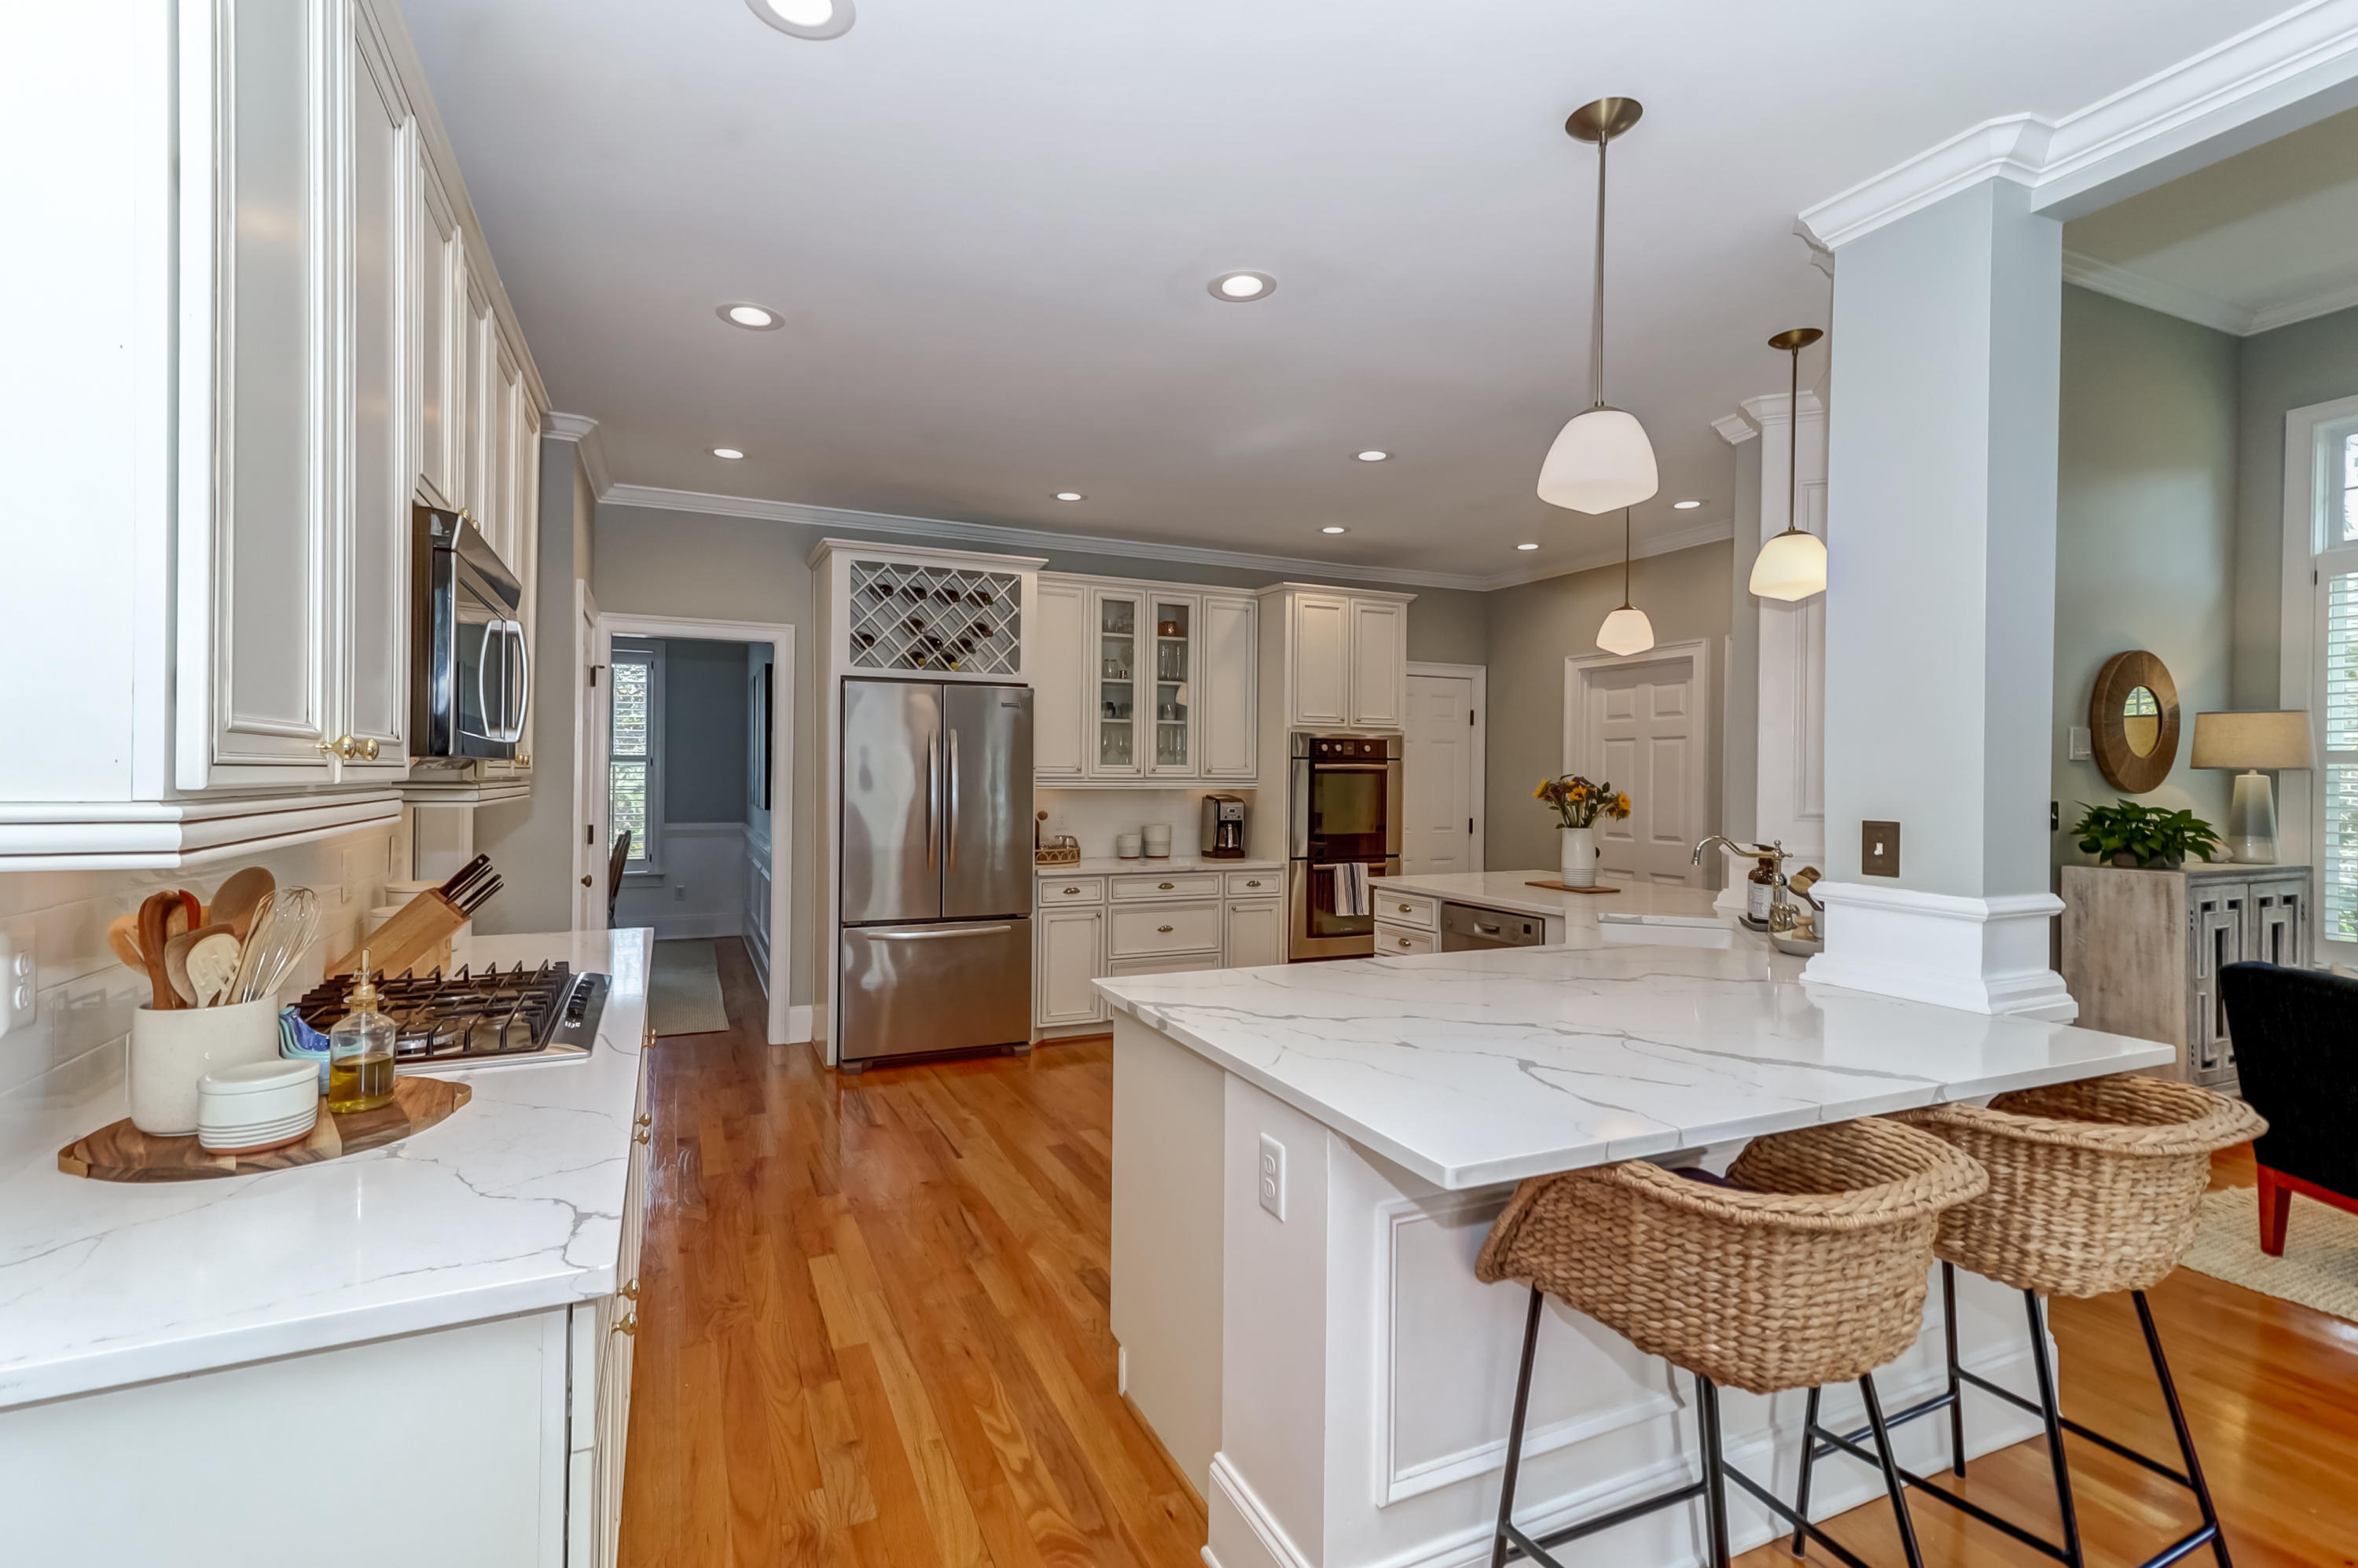 Woodward Pointe Homes For Sale - 657 White Chapel, Charleston, SC - 32